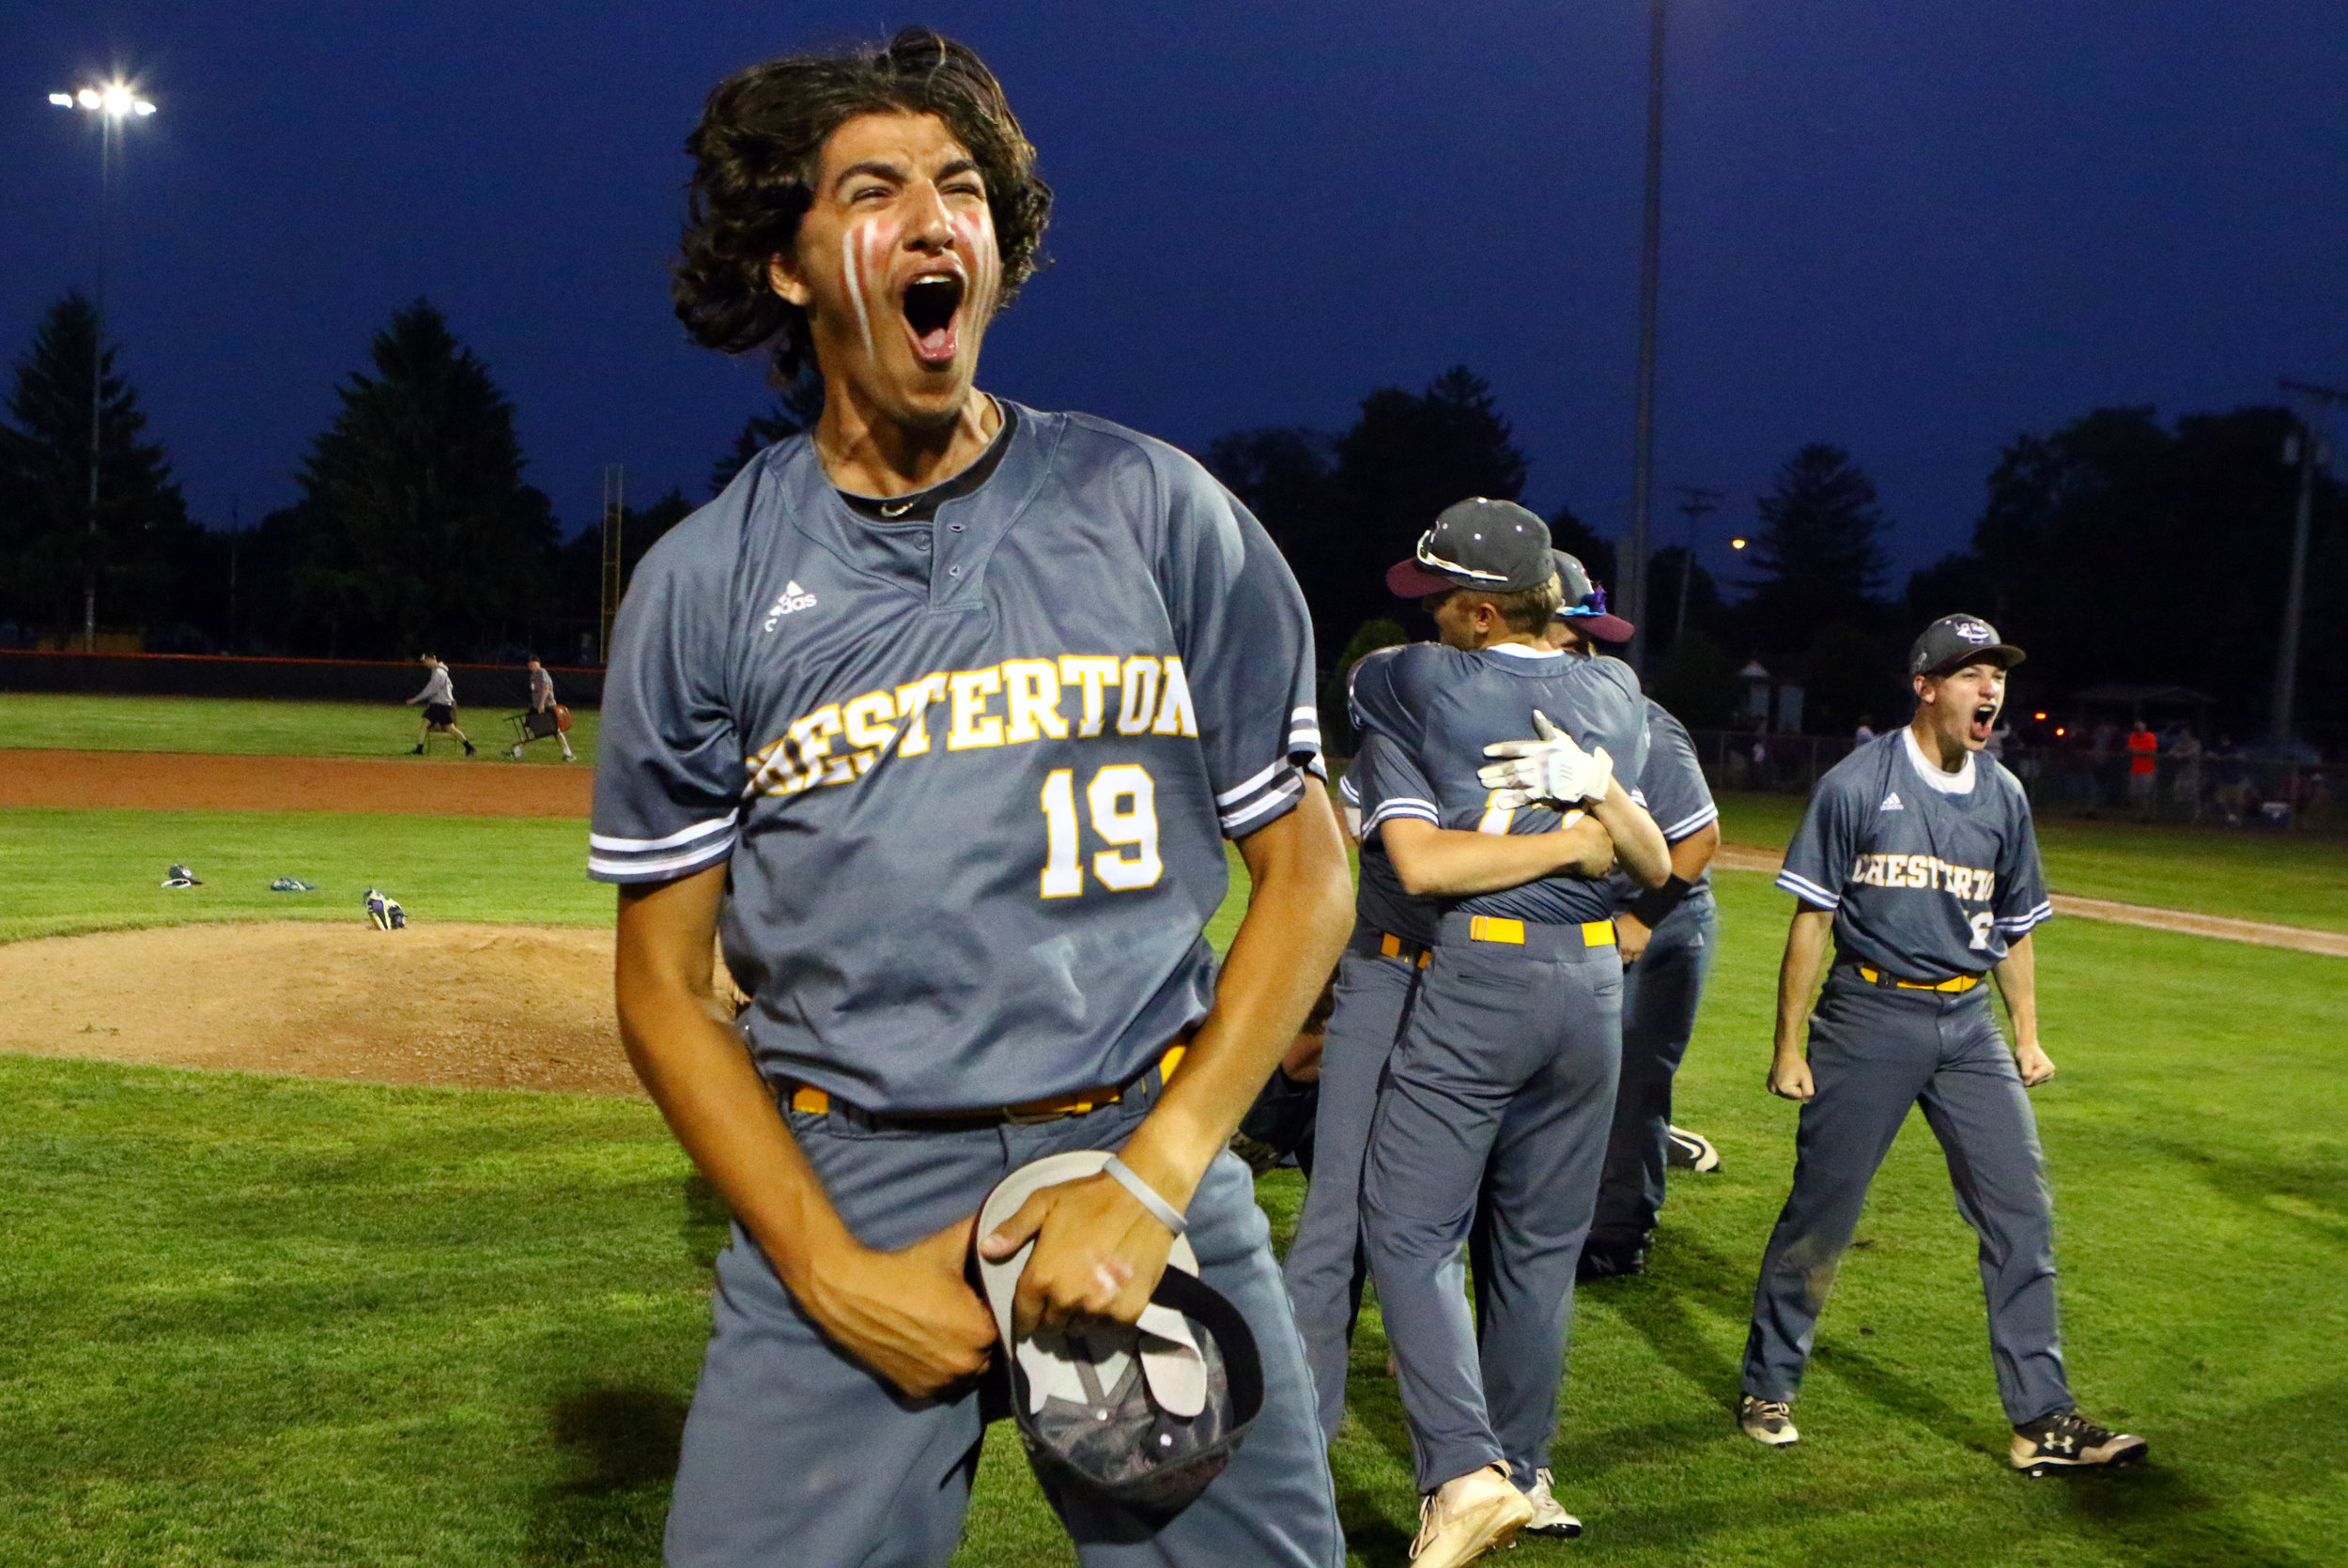 Chesterton's Haydn Malackows reacts on the field after Chesterton defeated Mishawaka 4-1 to win a regional final in LaPorte.